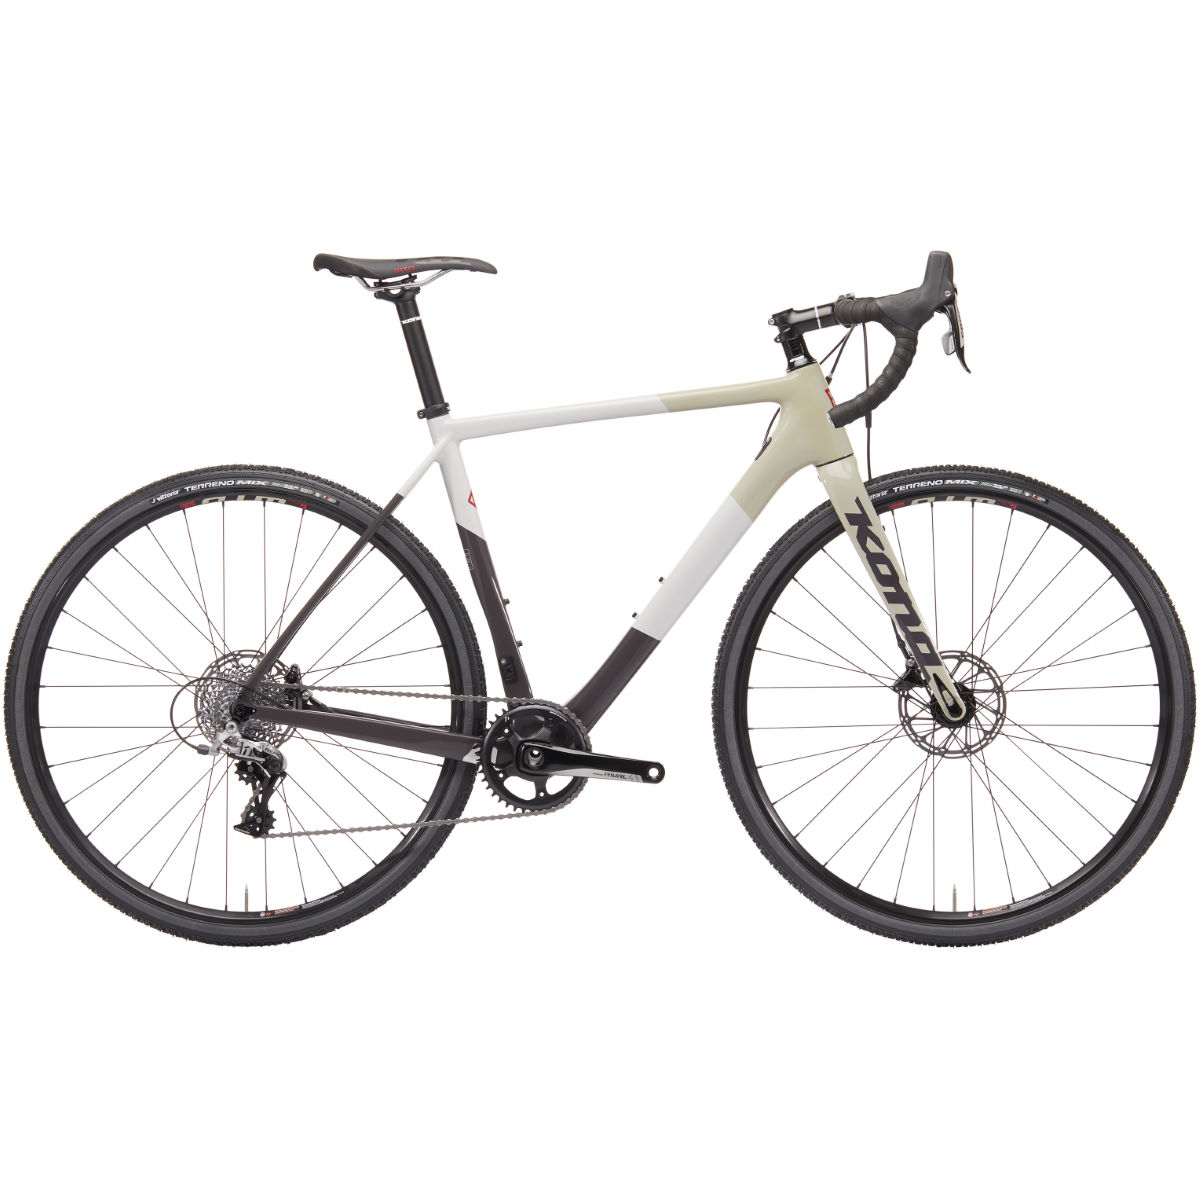 Kona Major Jake 2019 Bikes